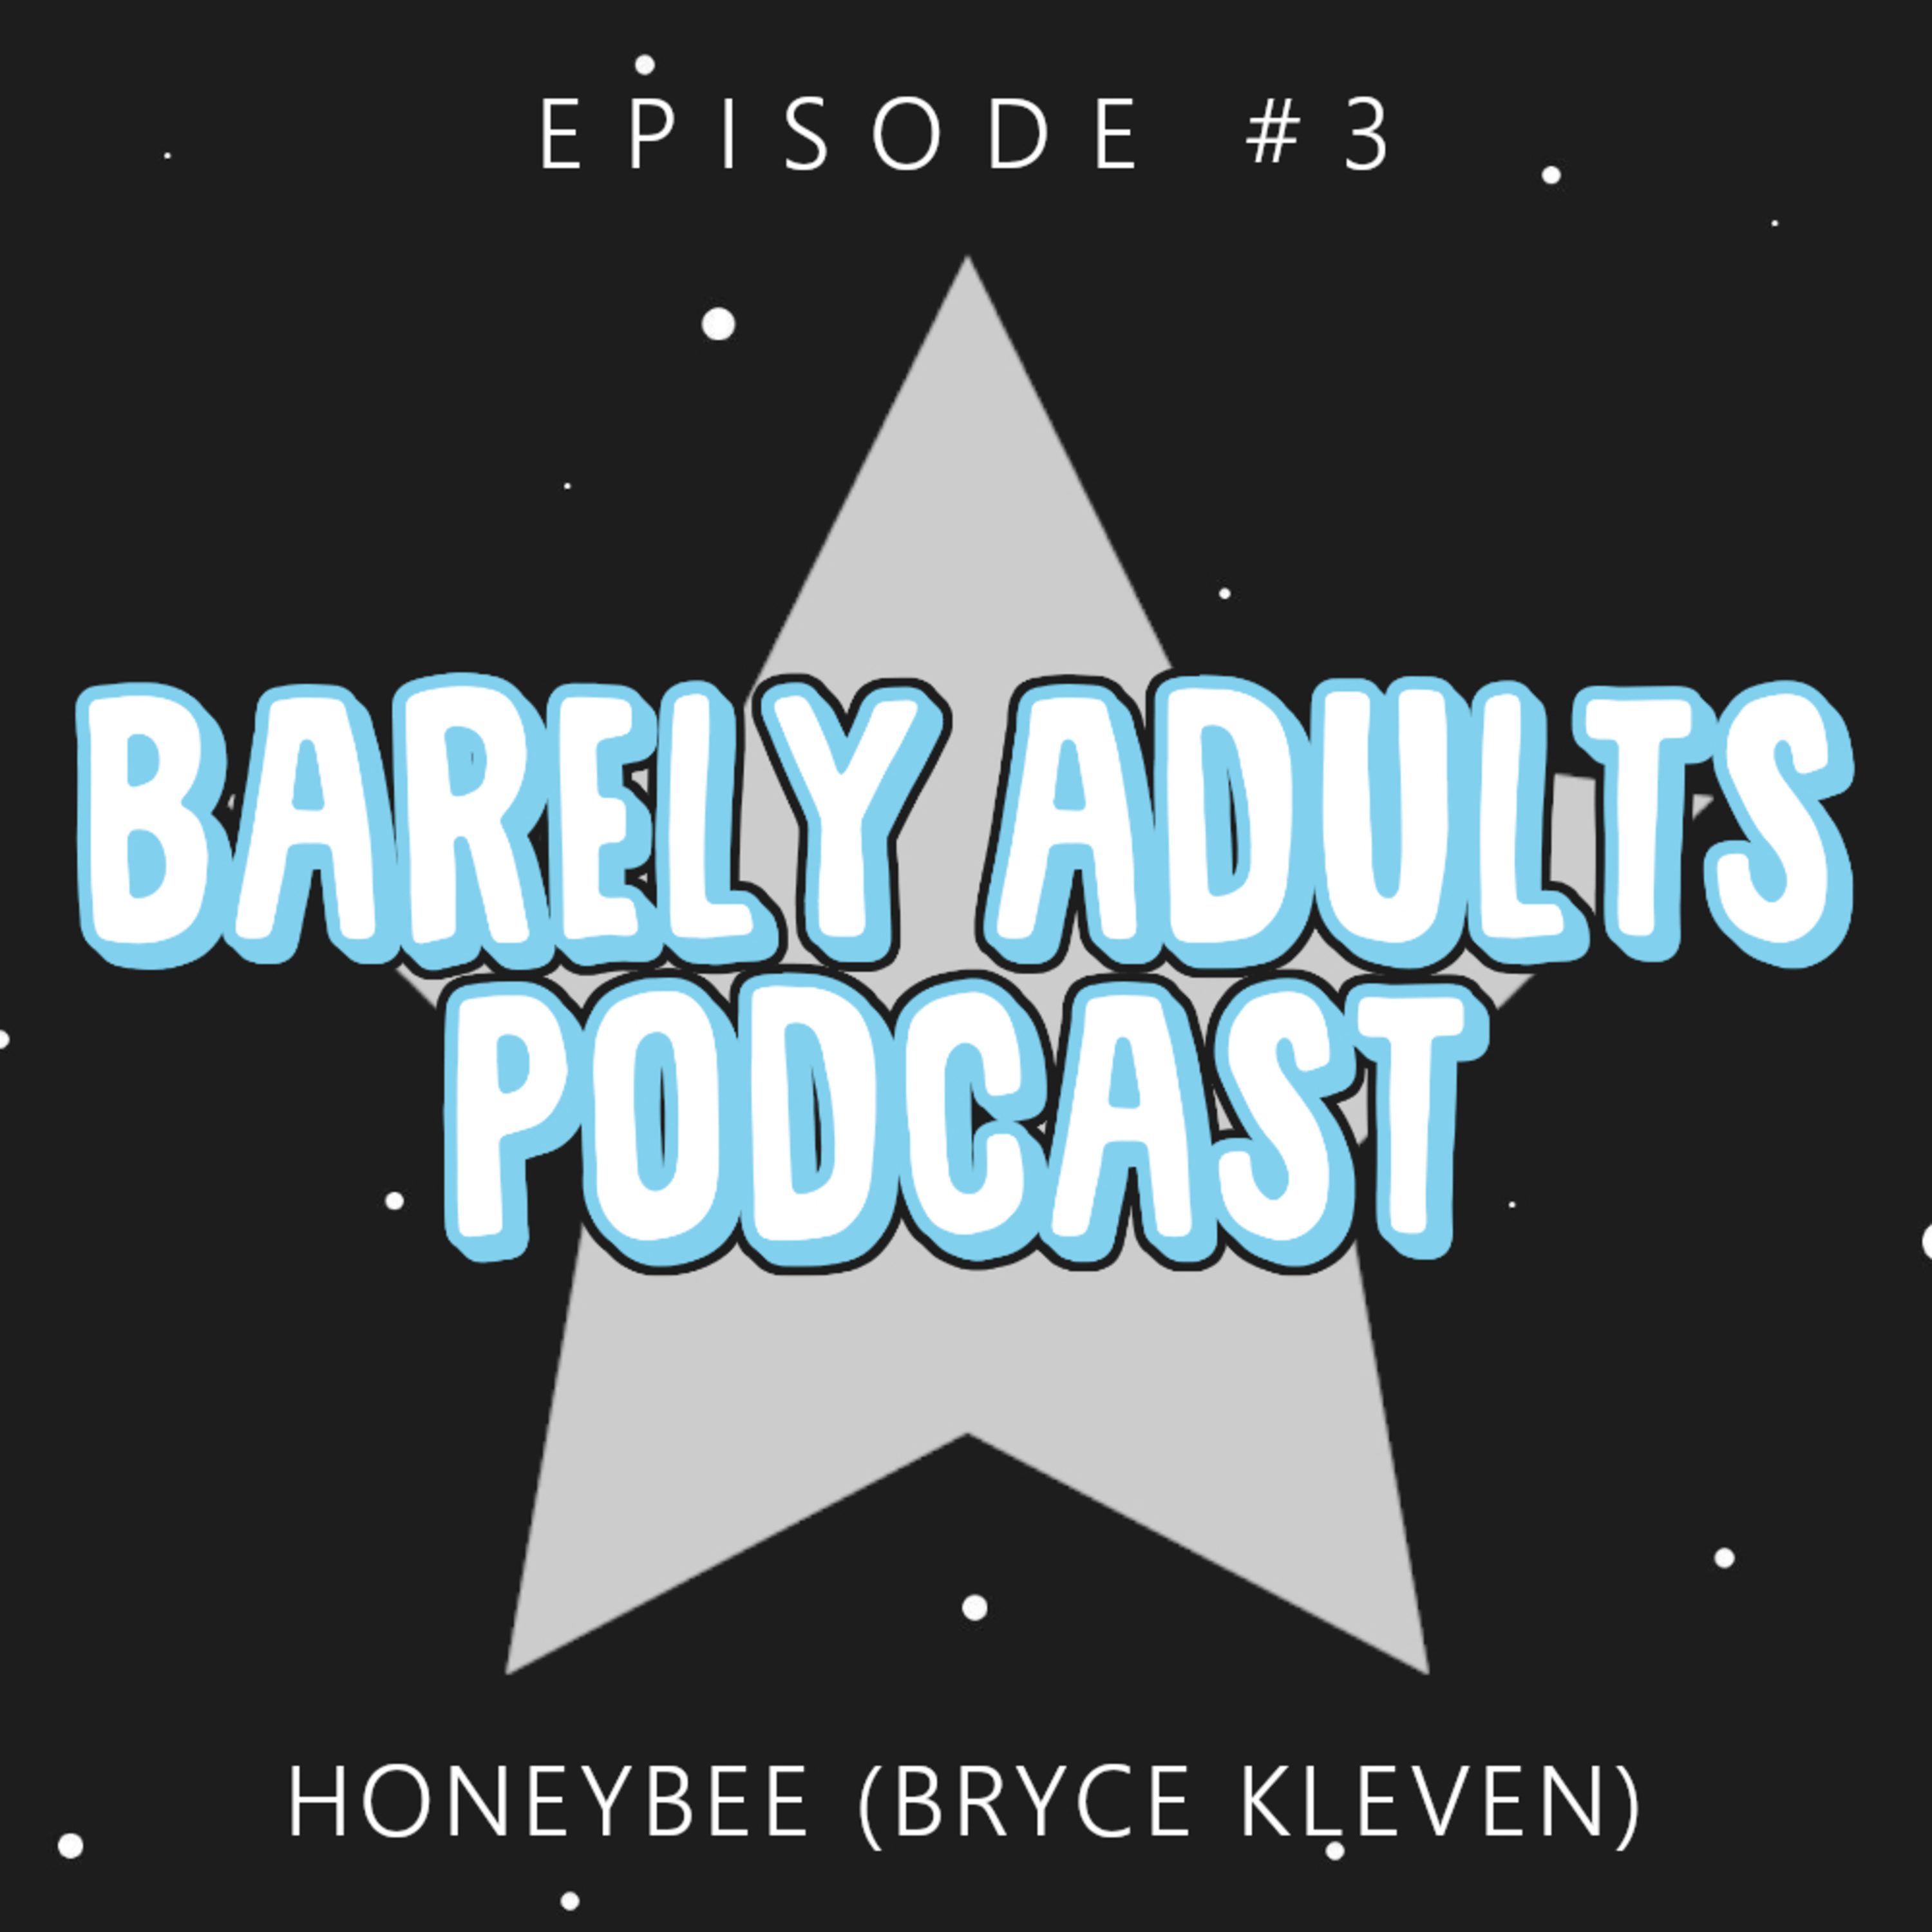 Honeybee (Bryce Kleven) | Barely Adults Podcast #3